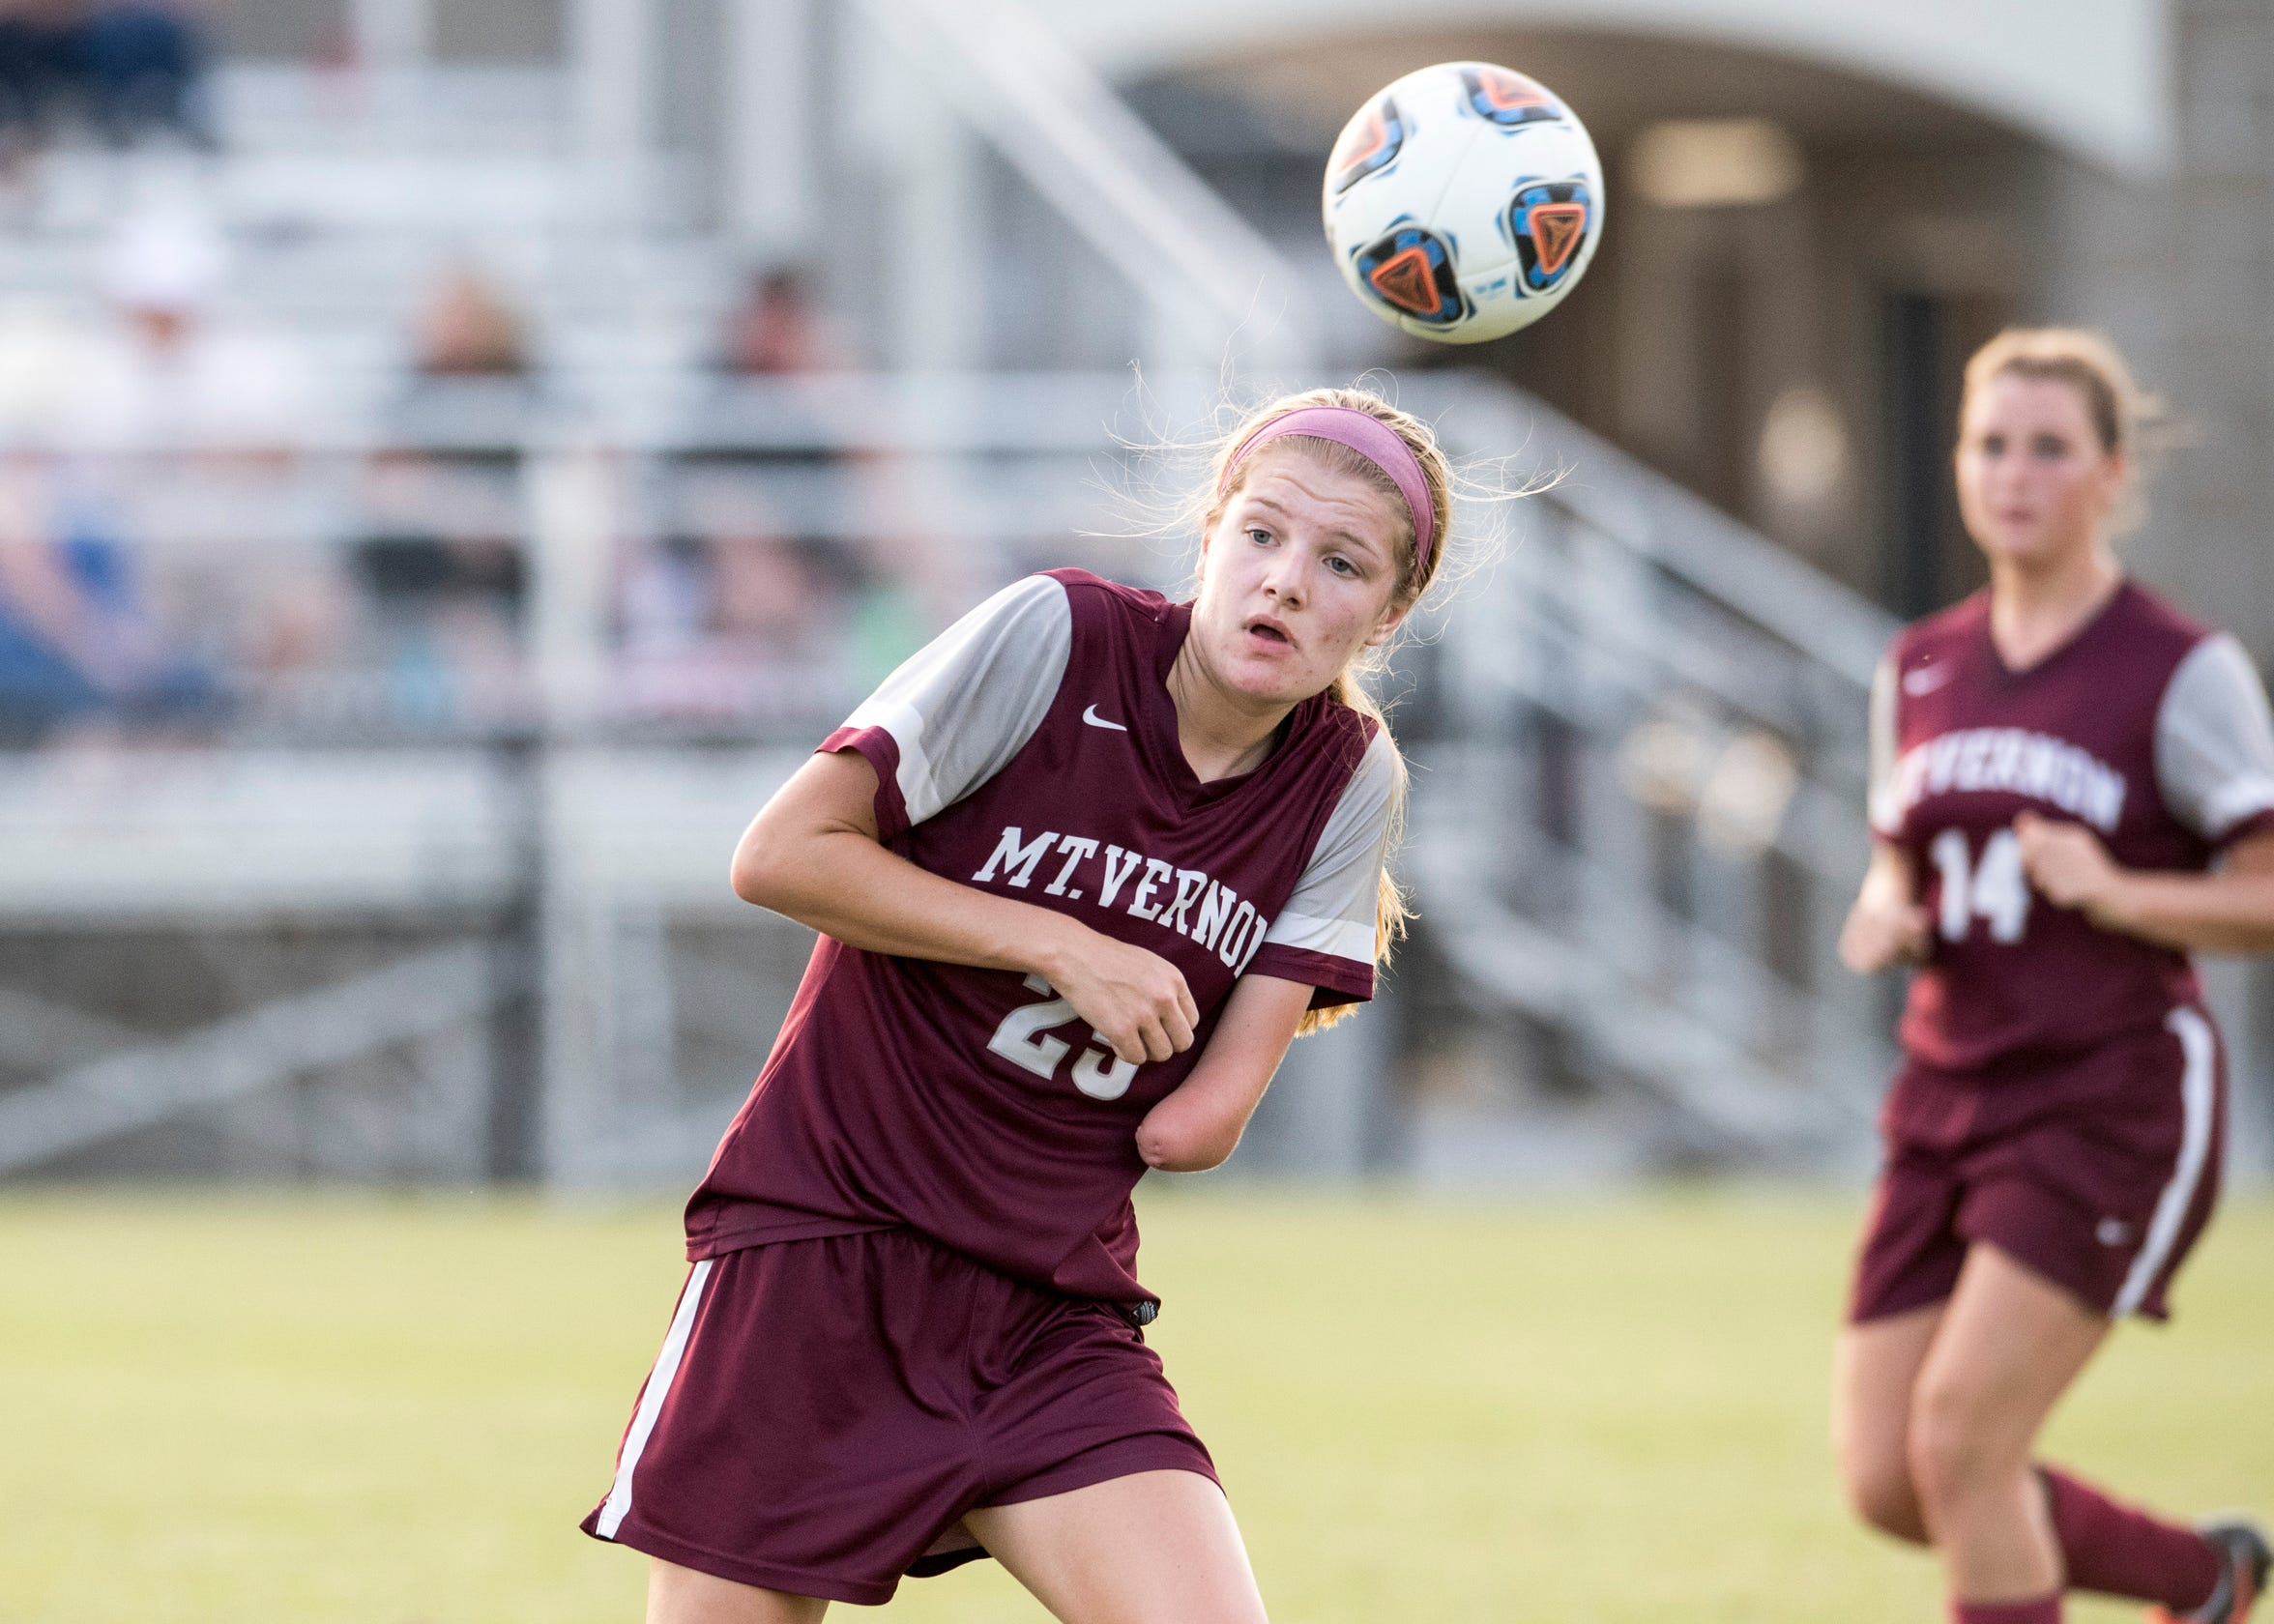 Kenzie Paul, a Junior at Mt. Vernon high school, heads the ball during a game against the Washington Hatchets Sept. 19, 2018.